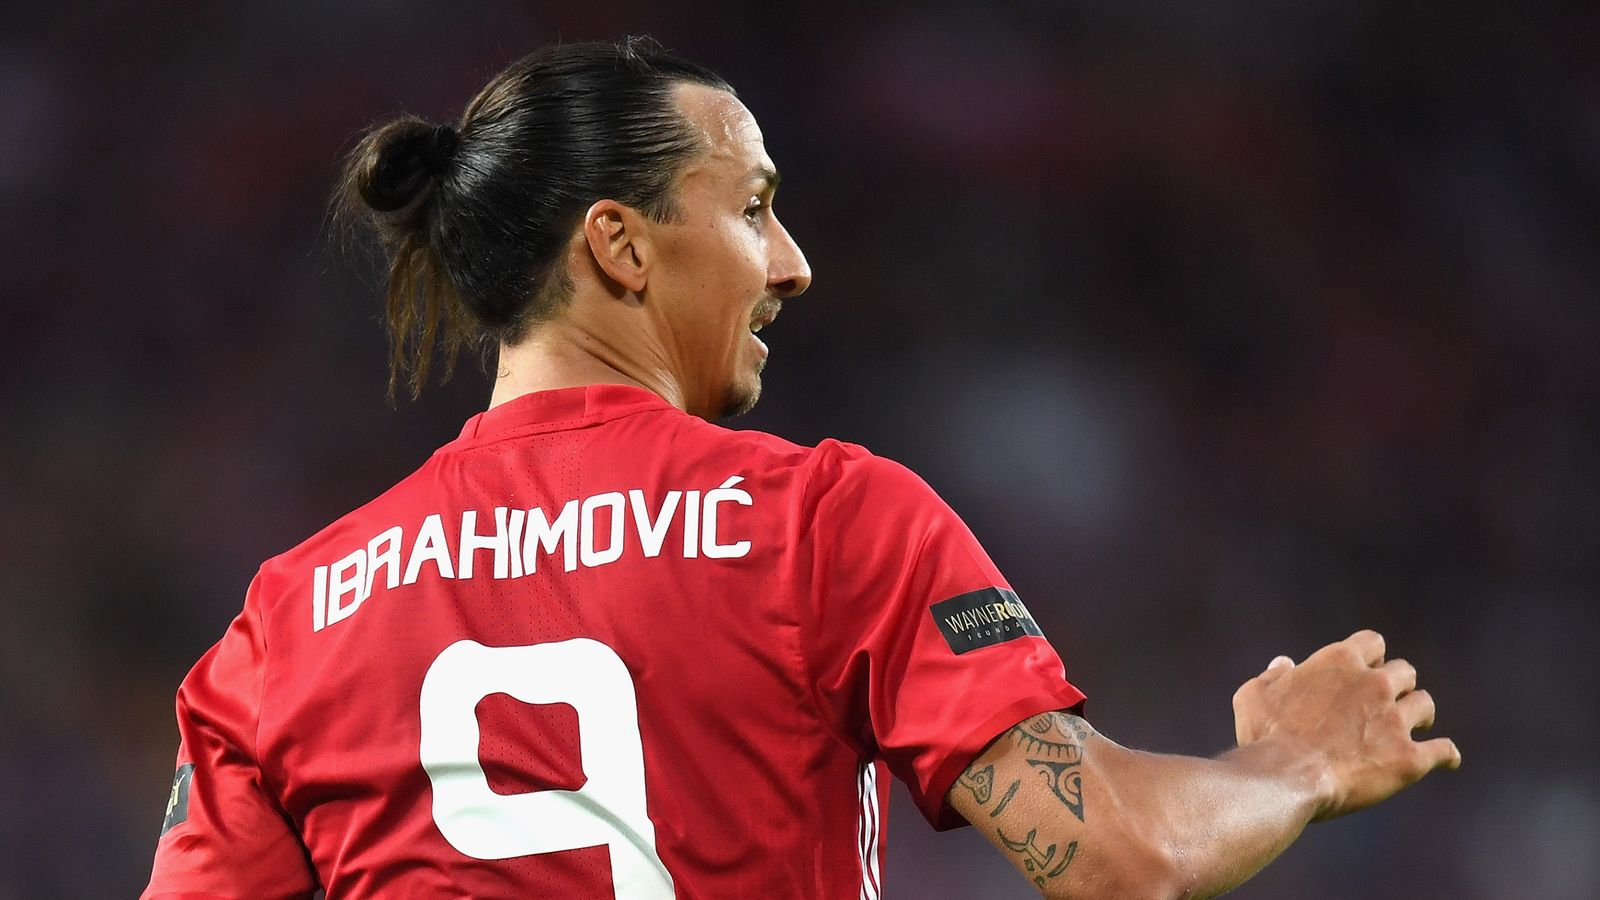 Zlatan Ibrahimovic Hd Wallpaper Manchester United 44 Pictures 1600x900